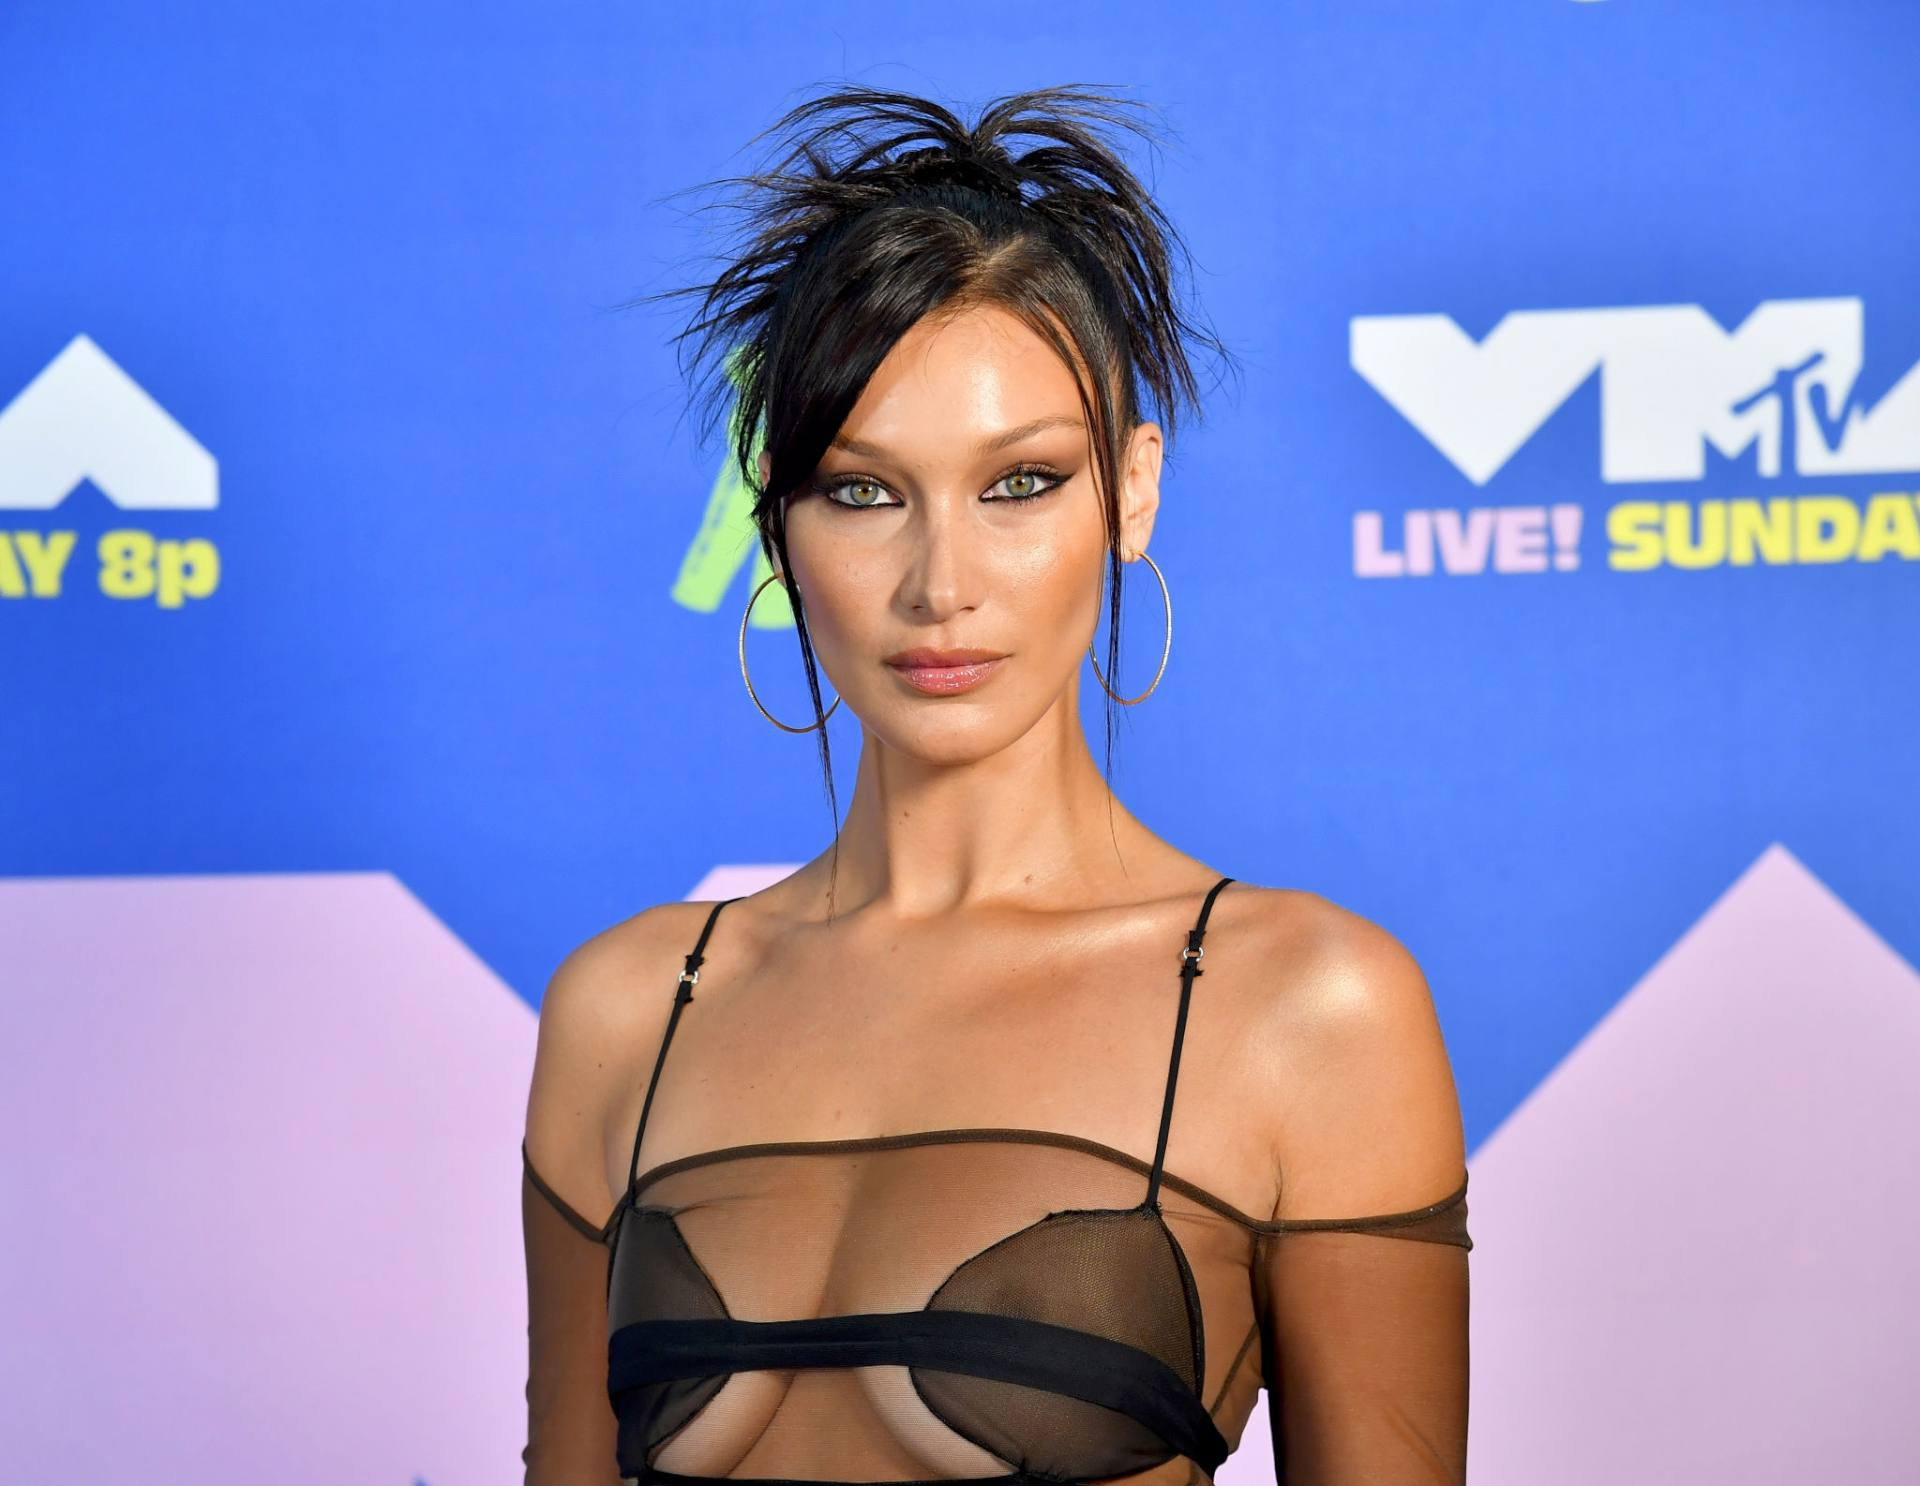 Bella Hadid Boobs In Sheer Top